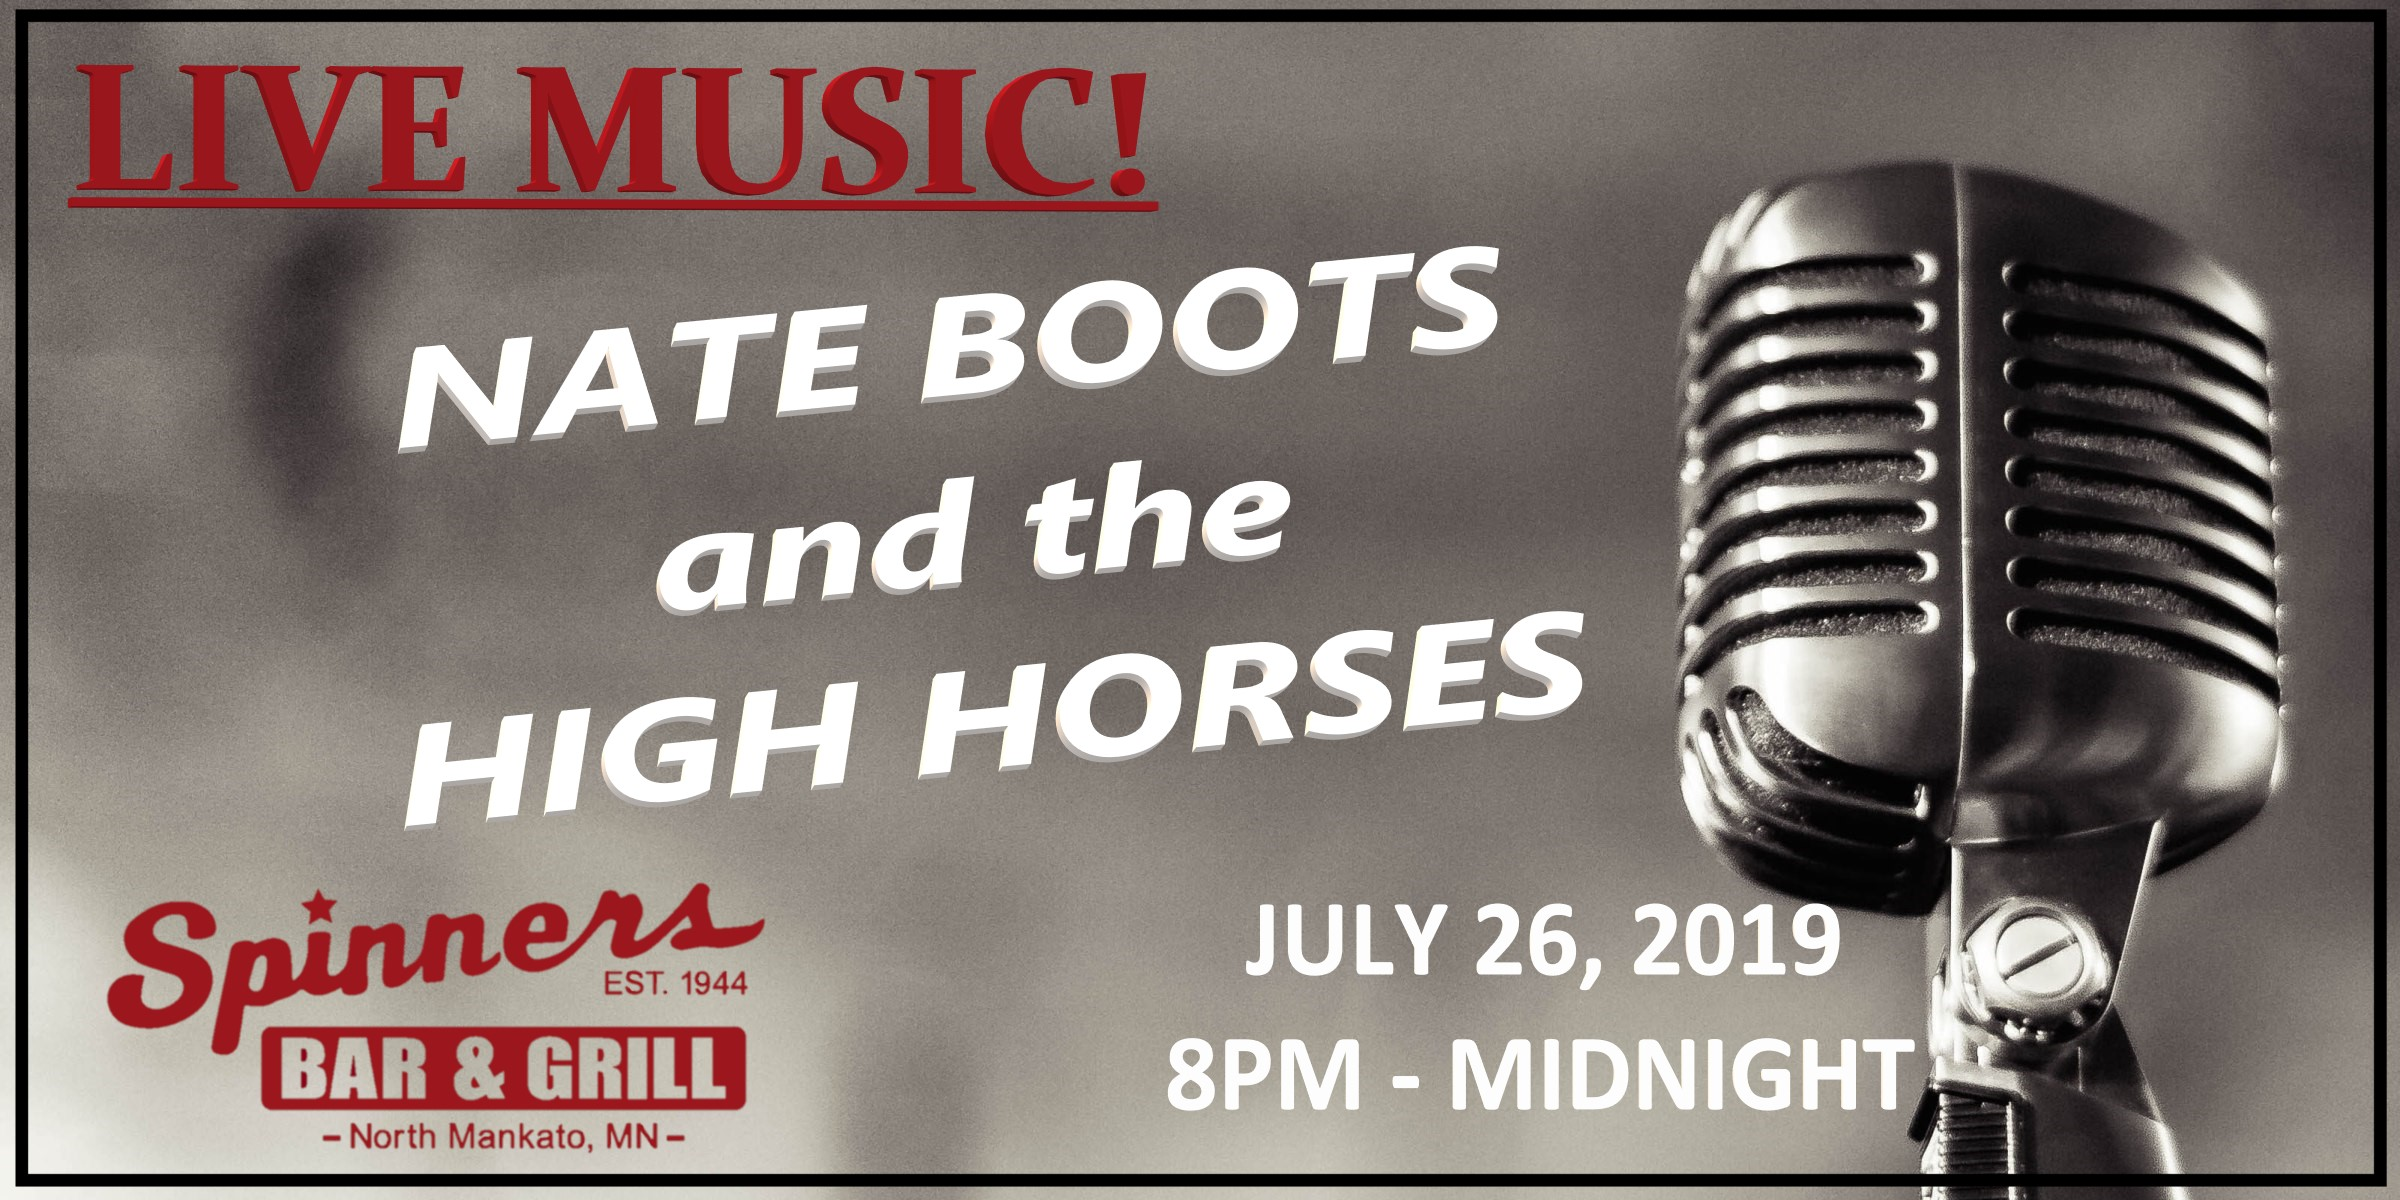 Nate Boots and the High Horses